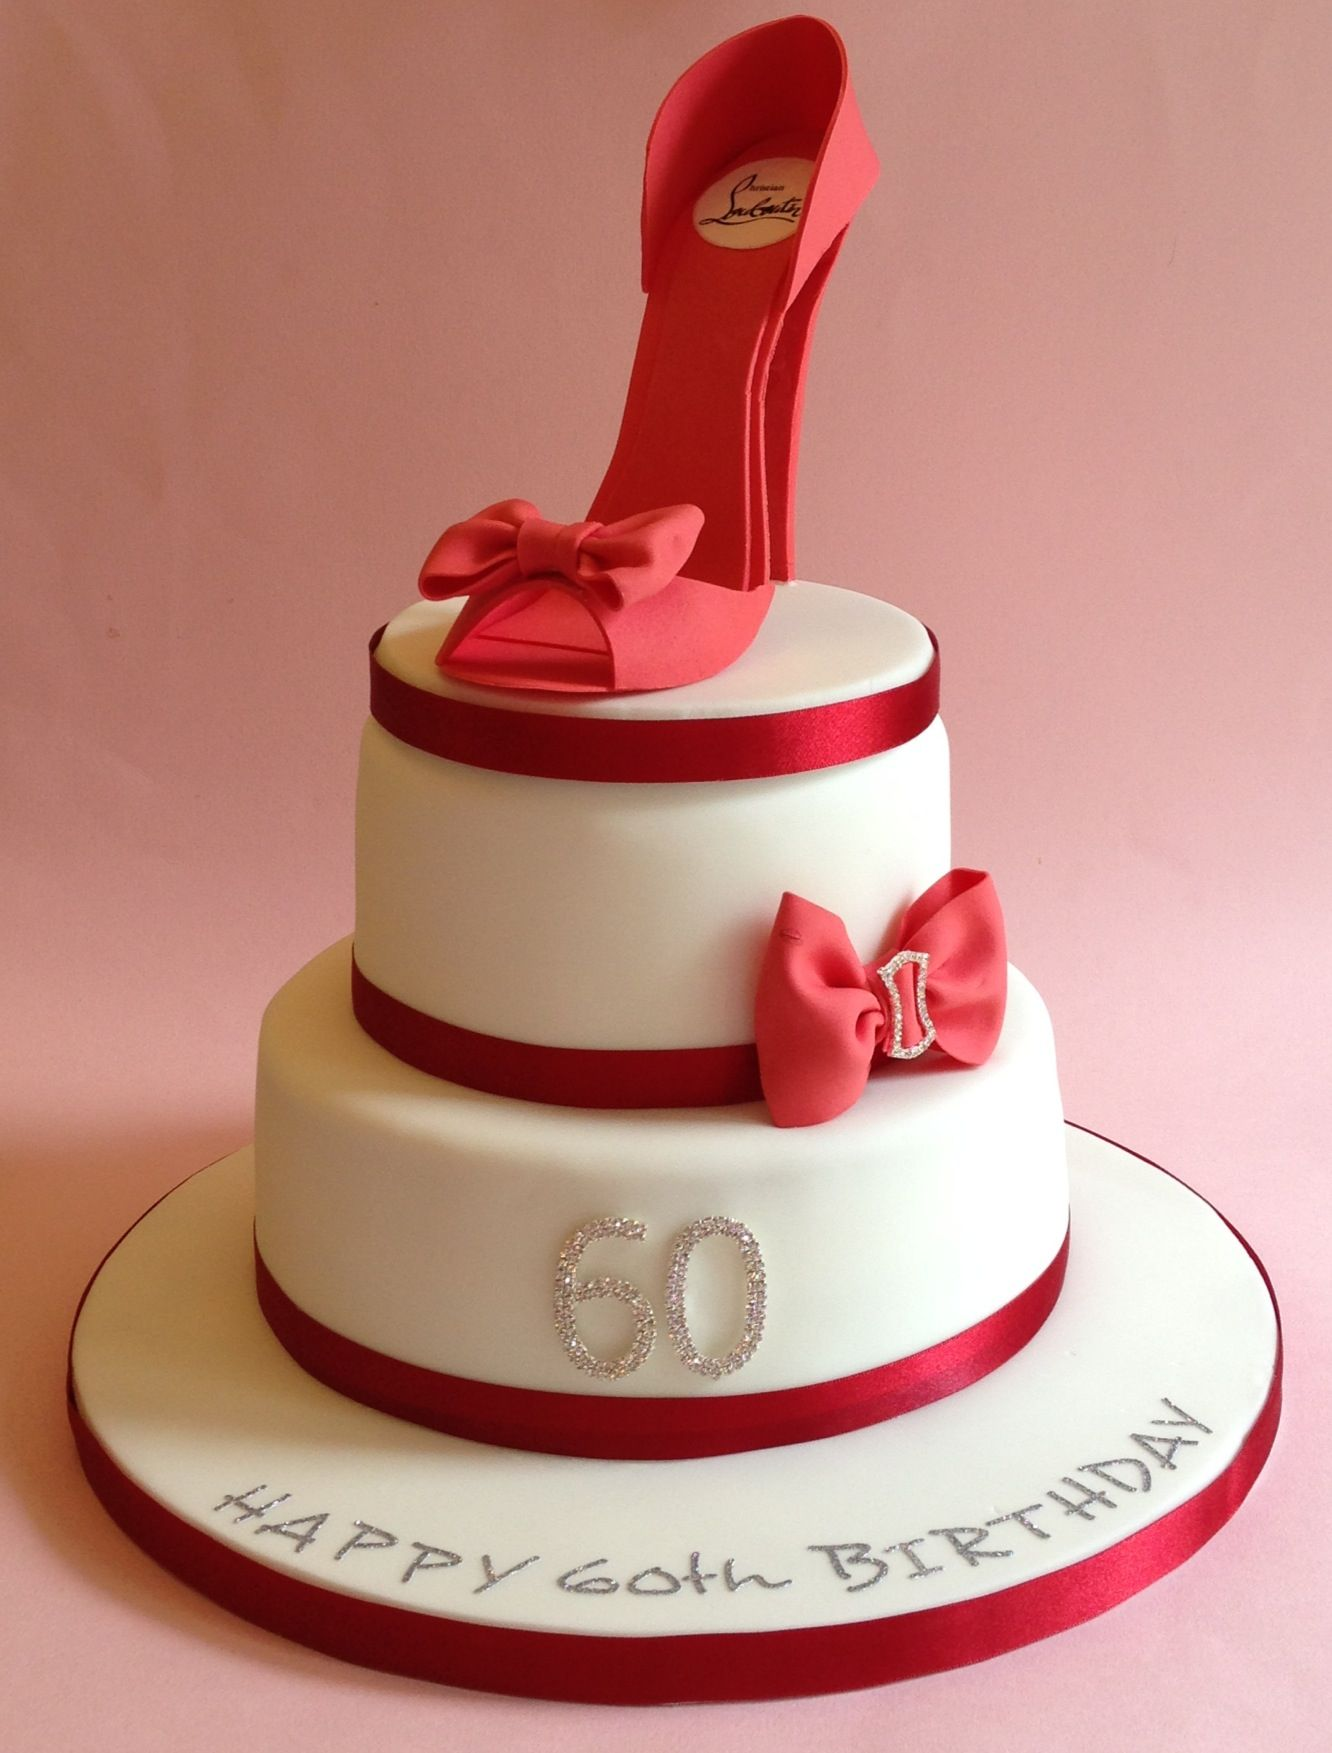 champaign 60th birthday cake personalised with names in the label on birthday cake with name yaman